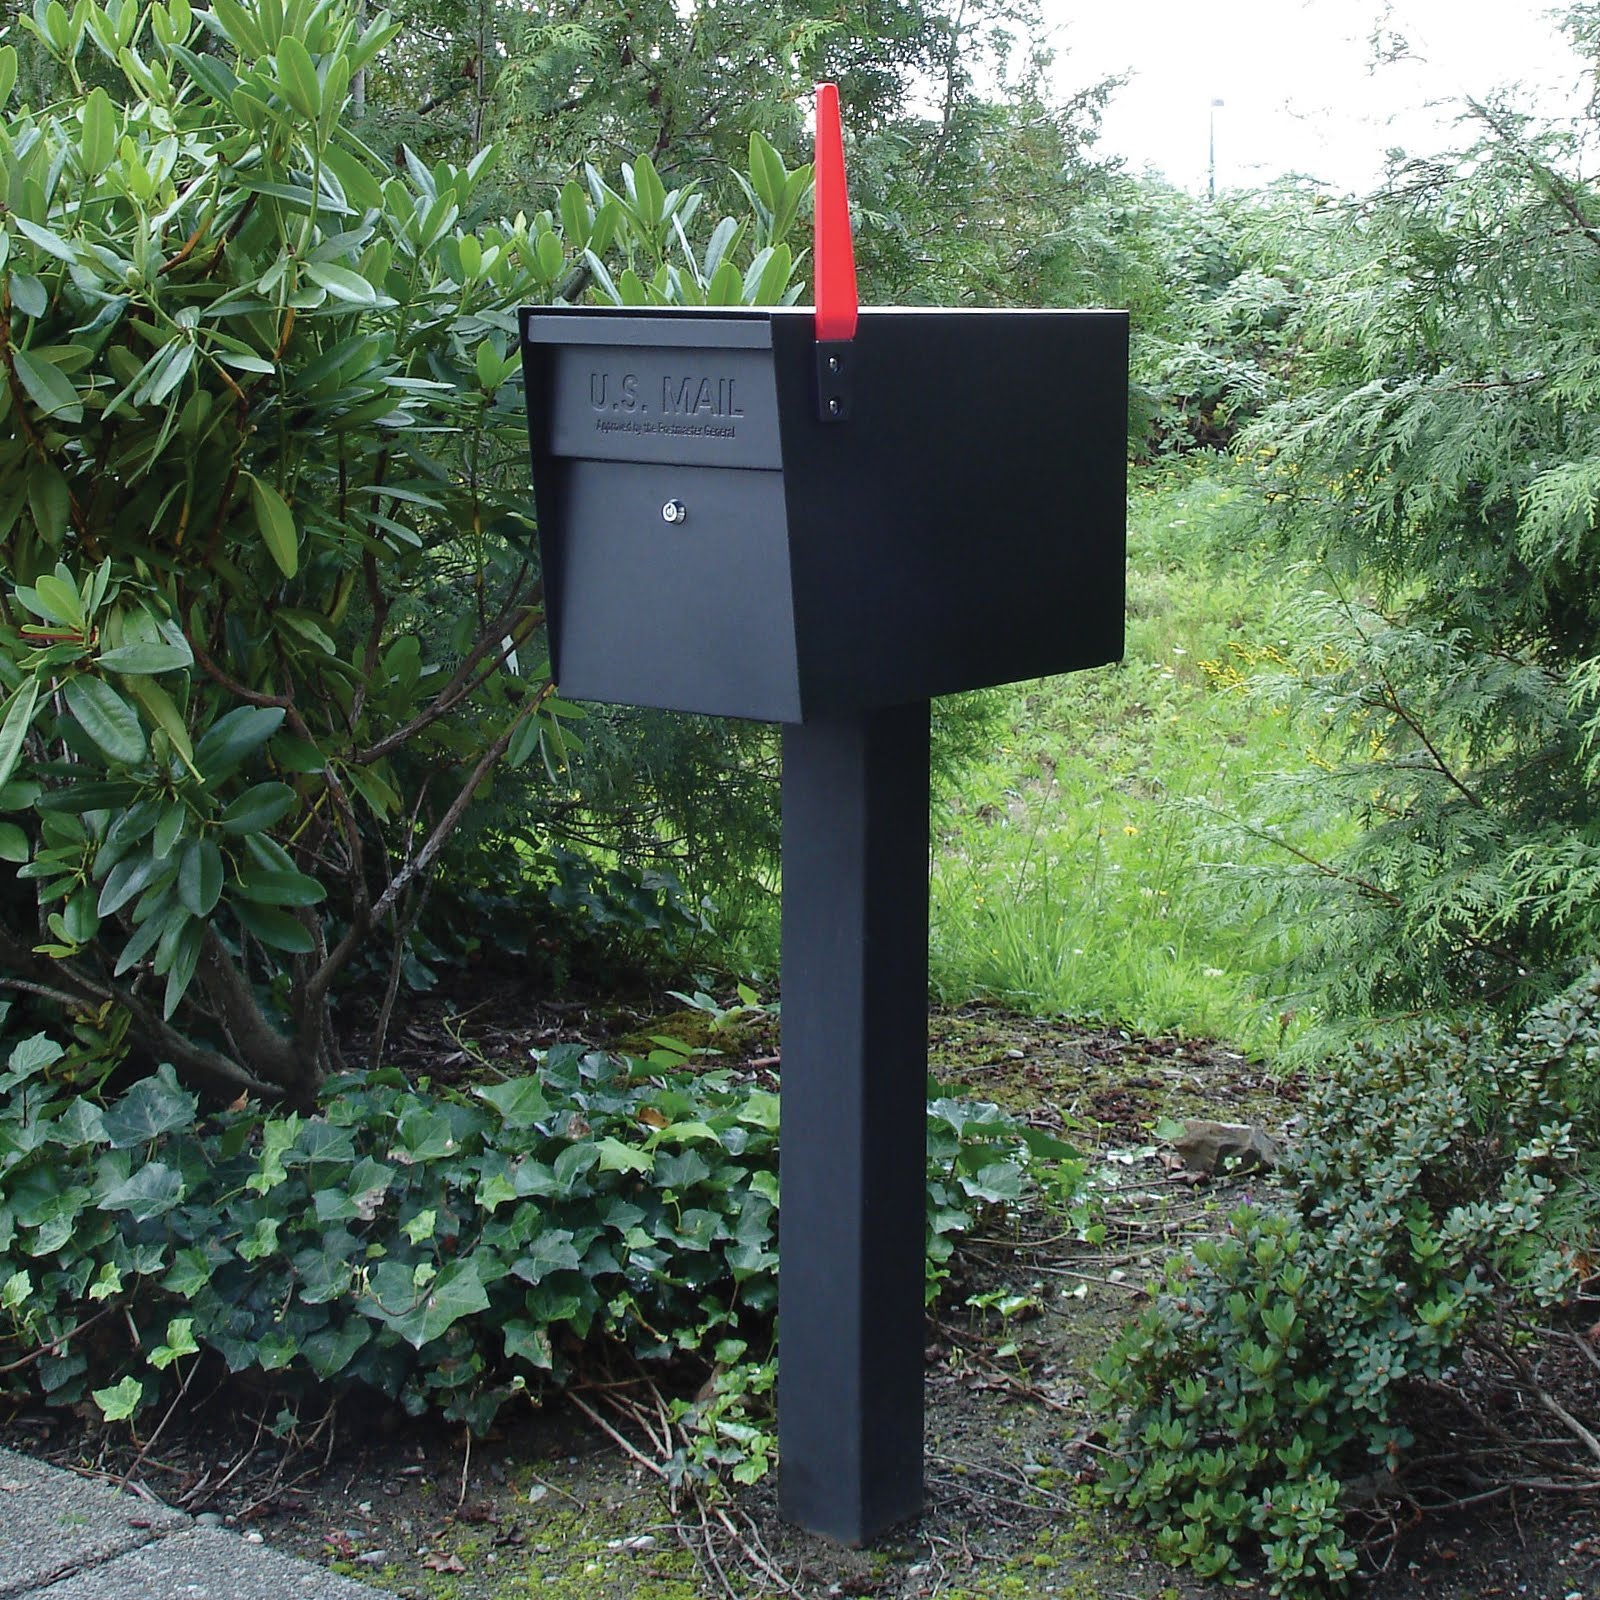 Shoreline Area News Secure Your Mailbox To Prevent Mail